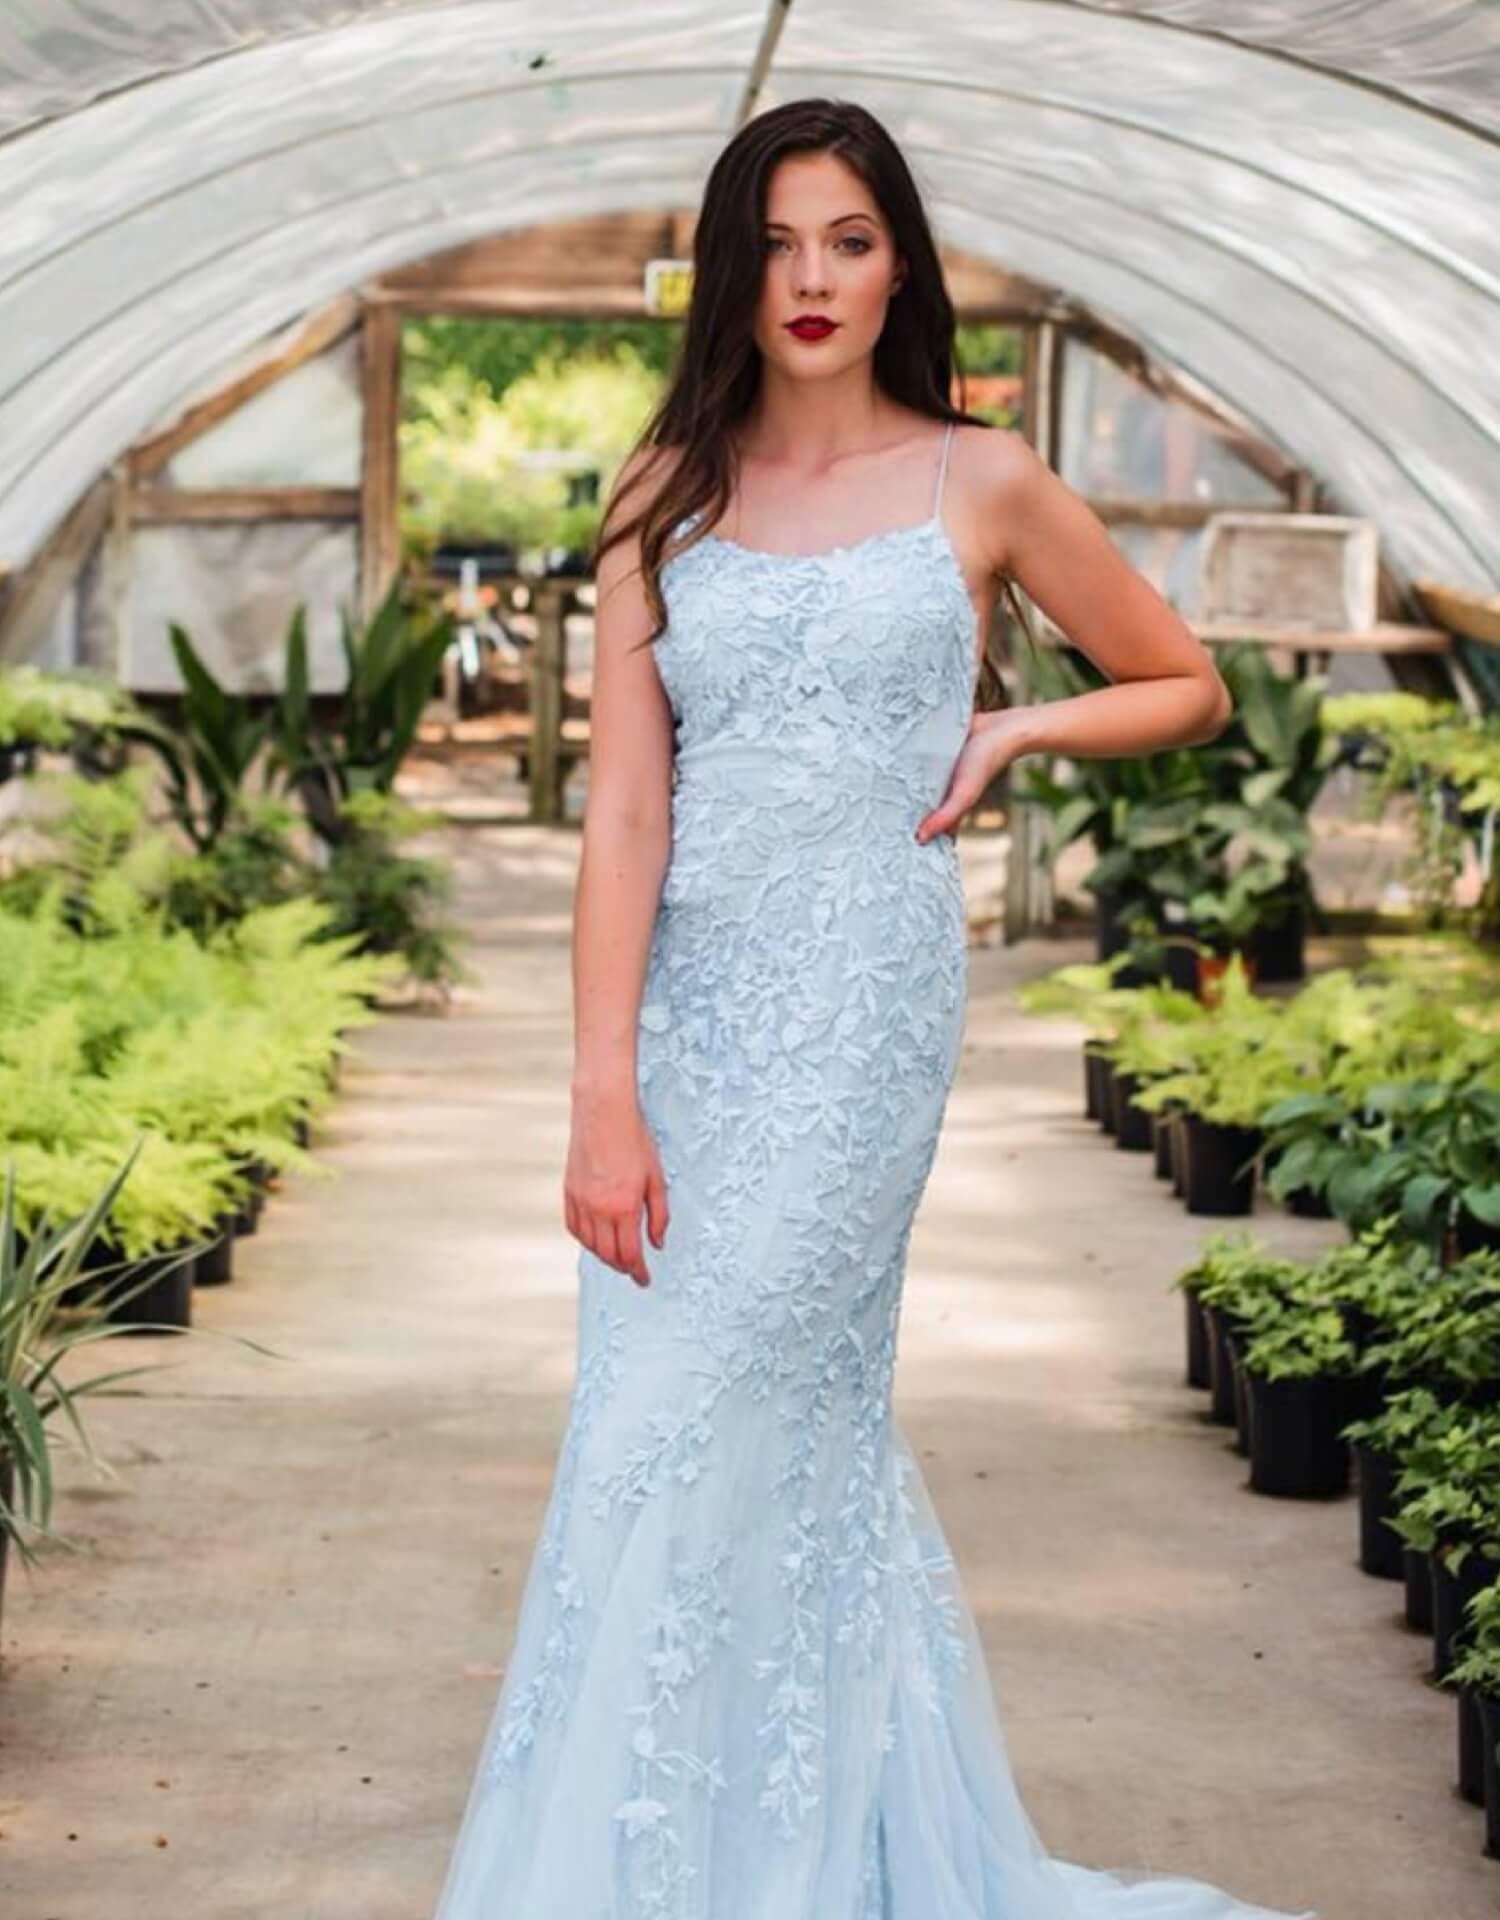 Model wearing blue Sherri Hill dress